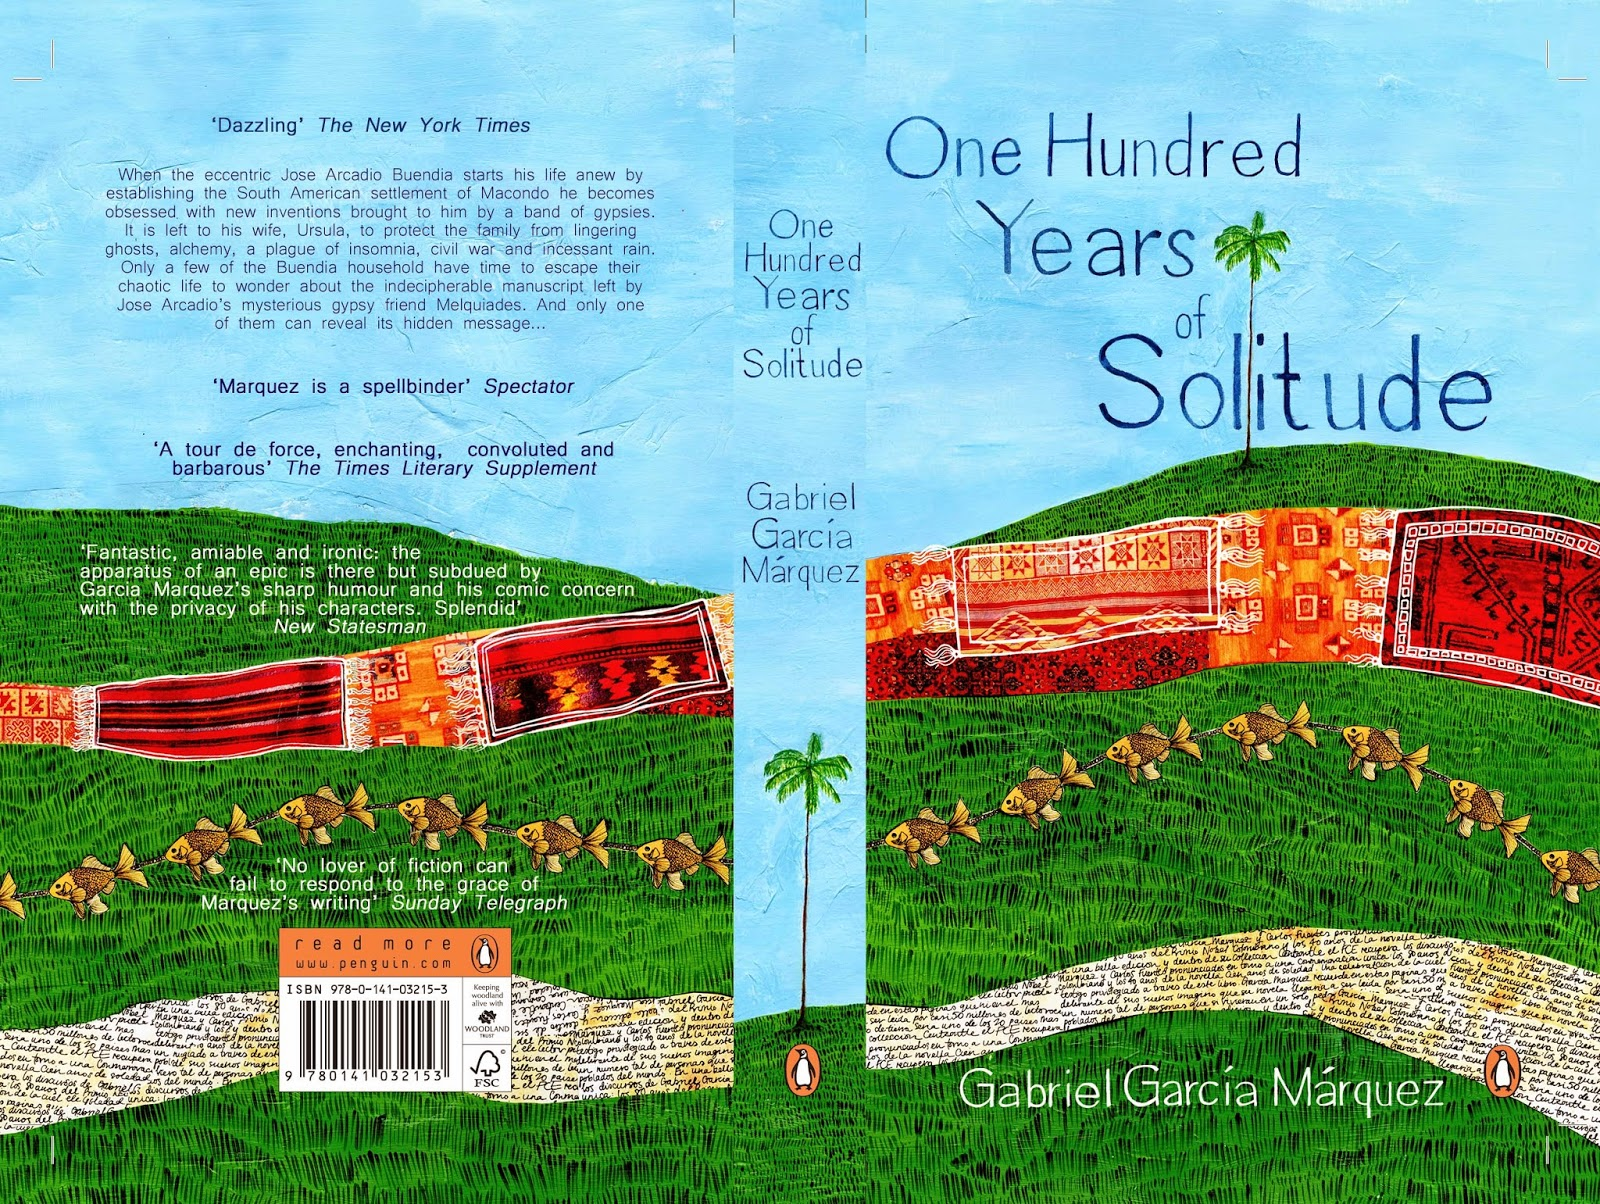 an analysis of not abusing the power given to one person in one hundred years of solitude by gabriel One hundred years of solitude study guide contains a biography of gabriel garcia marquez, literature essays, quiz questions, major themes, characters, and a full summary and analysis.